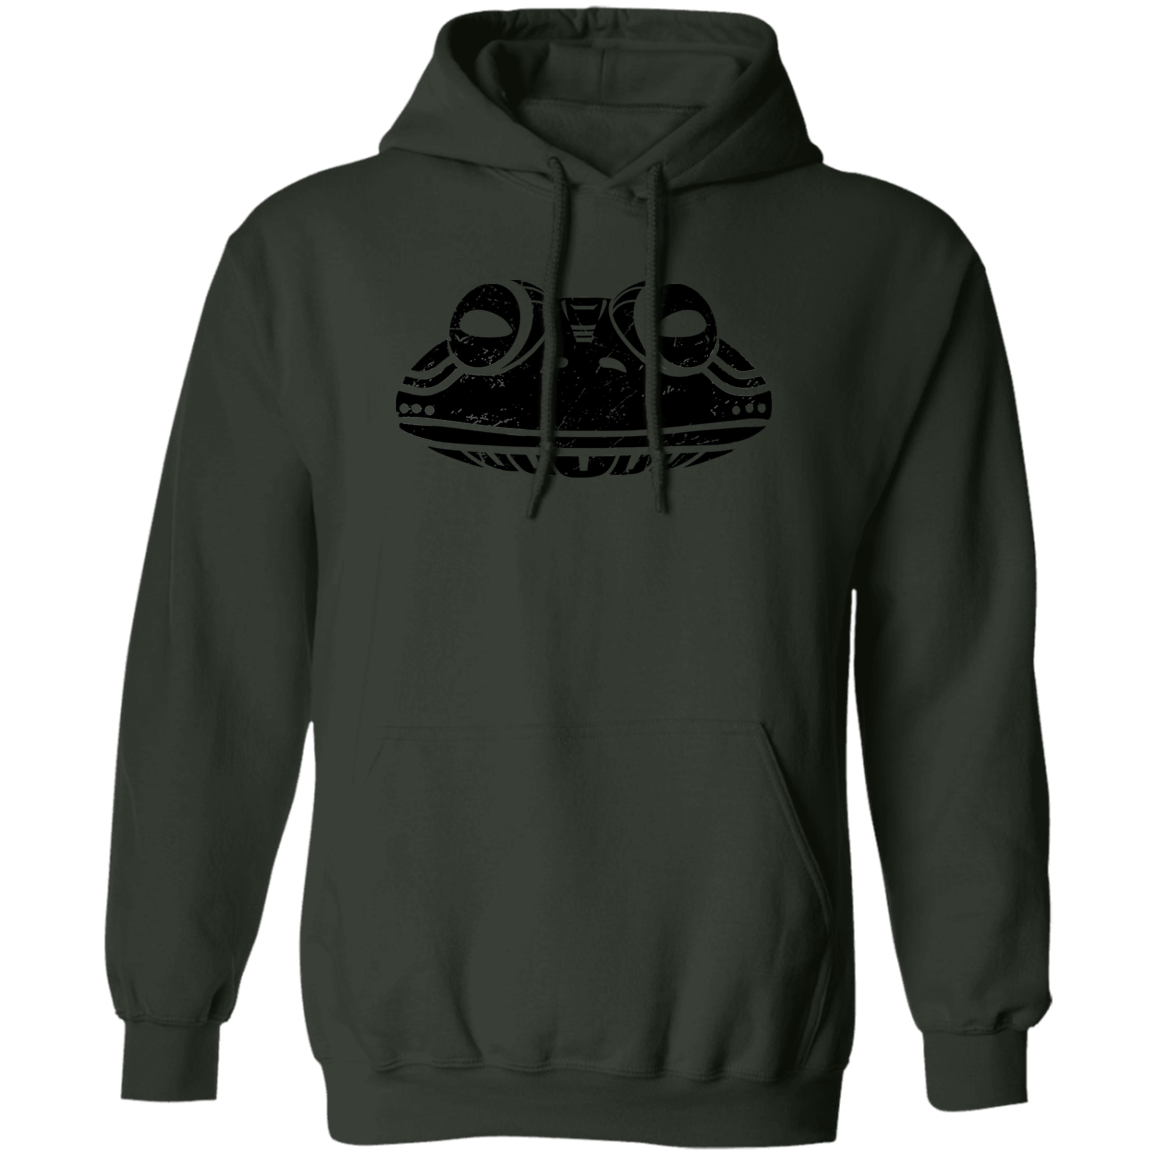 Black Distressed Emblem Hoodies for Adults (Frog/Hopalong)